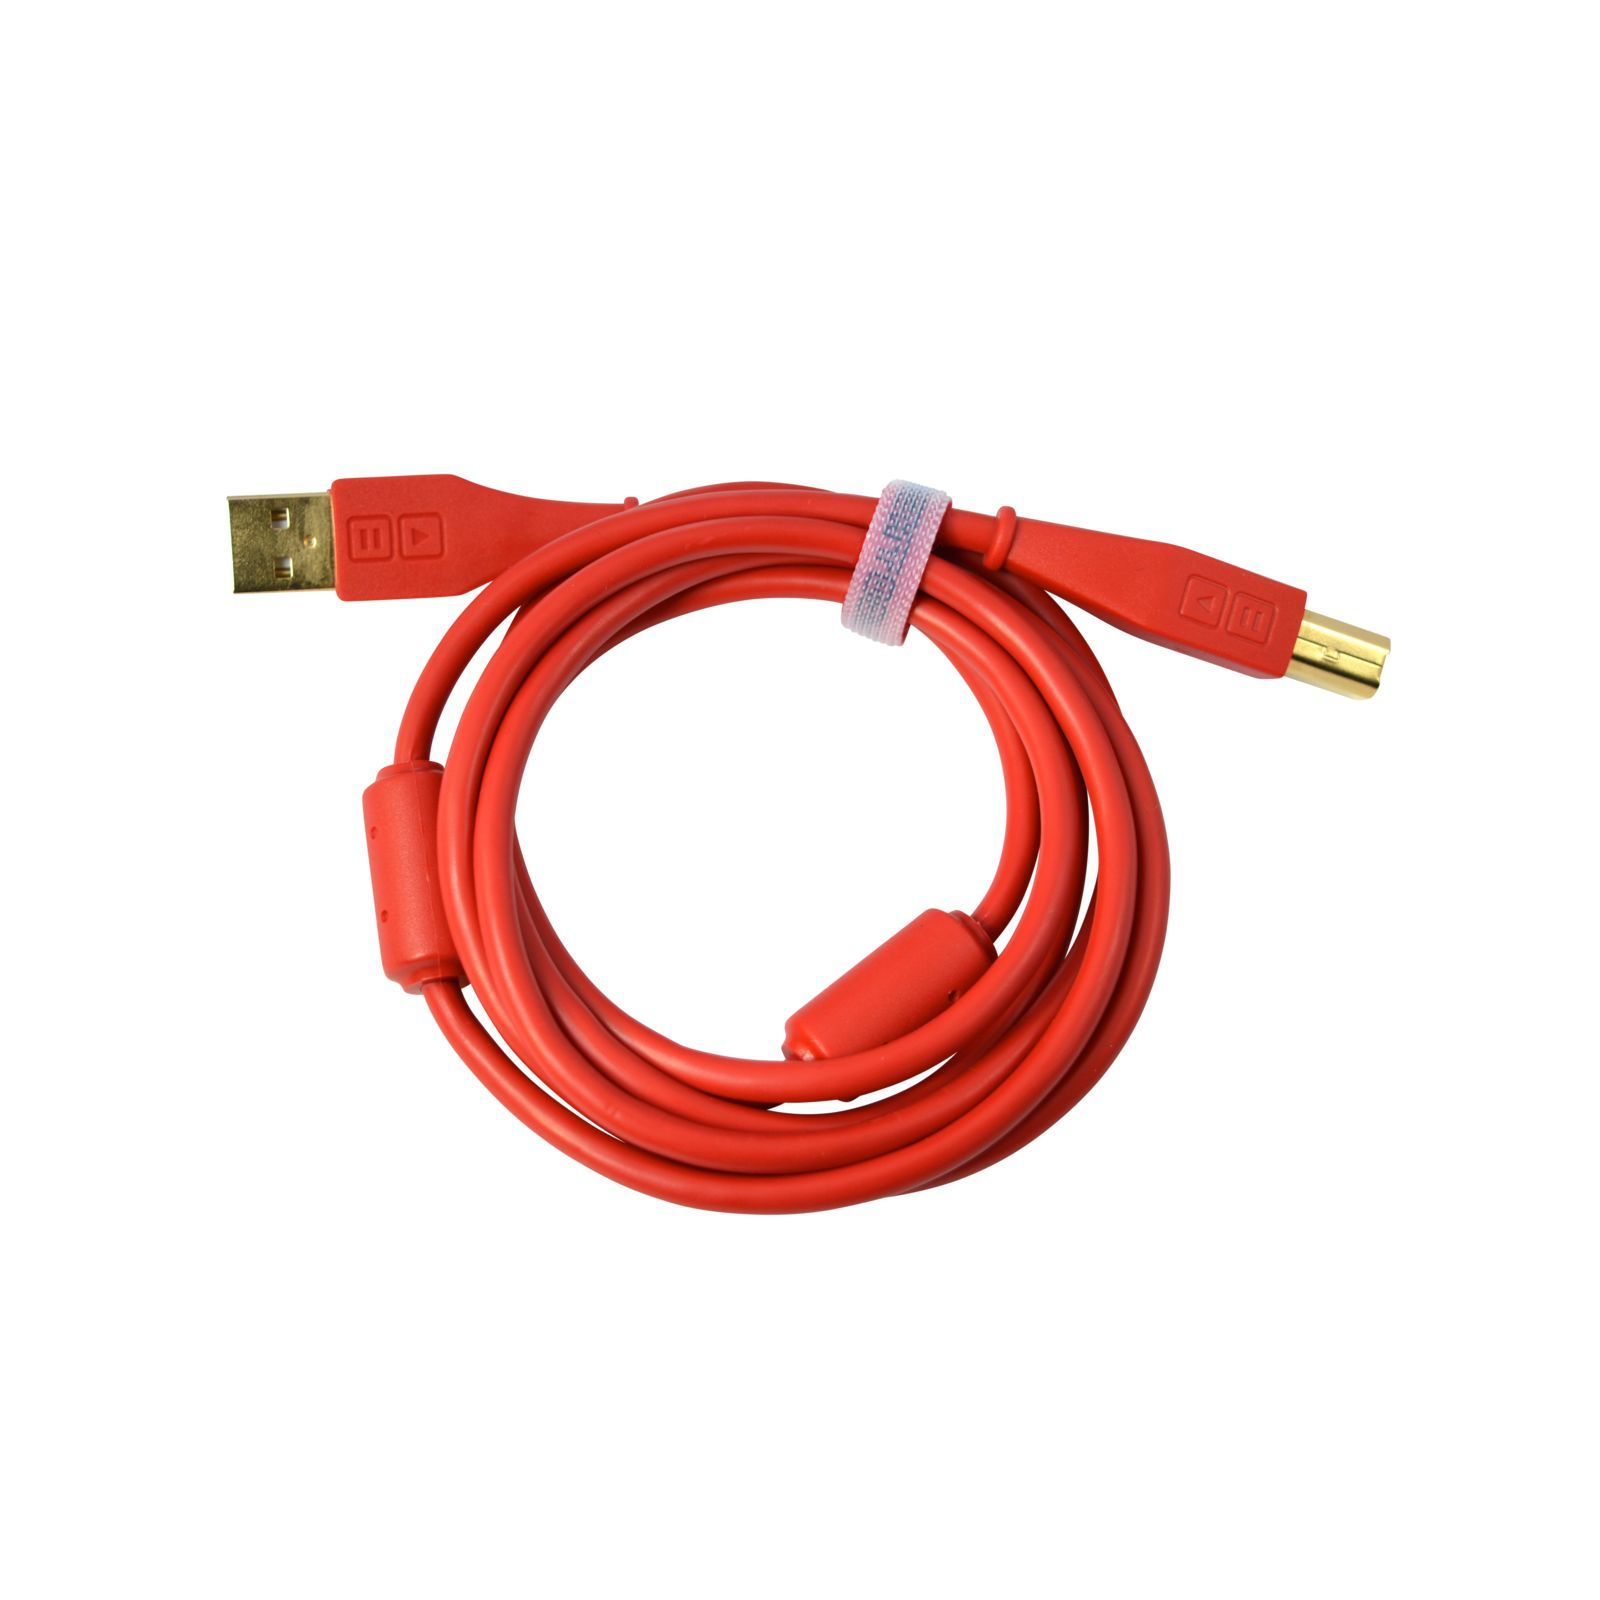 DJ TECHTOOLS DJTT USB Chroma Cable Red 1.5m, straight Produktbillede